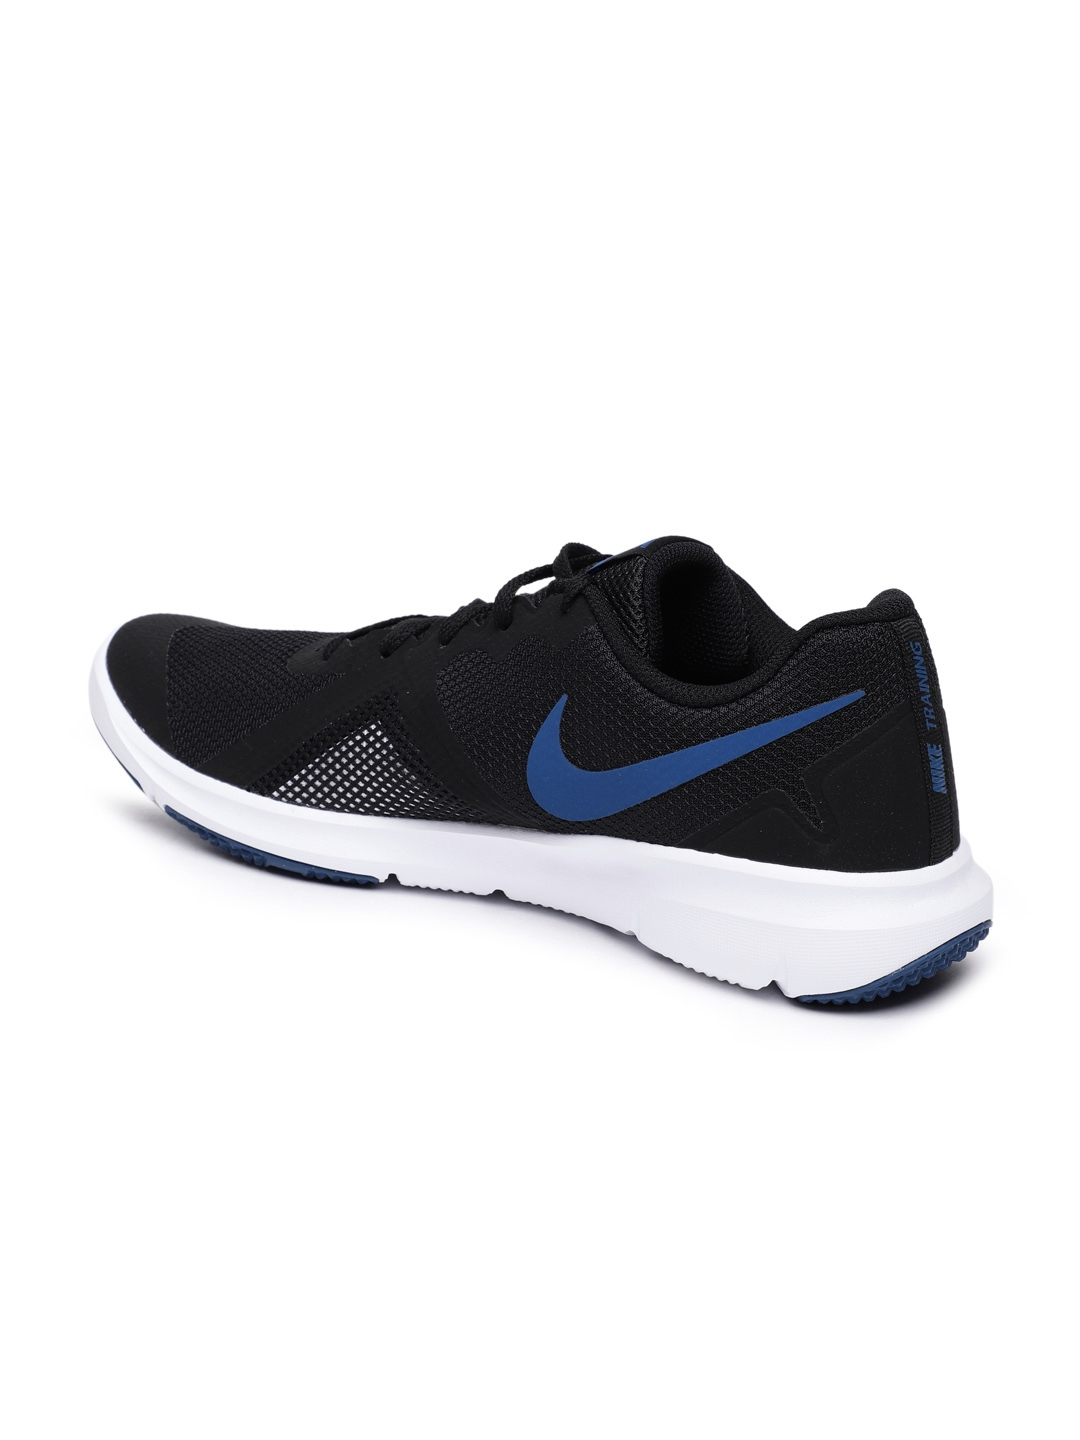 4aa9a0a2d7e6 Buy Nike Men Black Flex Control II Training Shoes - Sports Shoes for ...